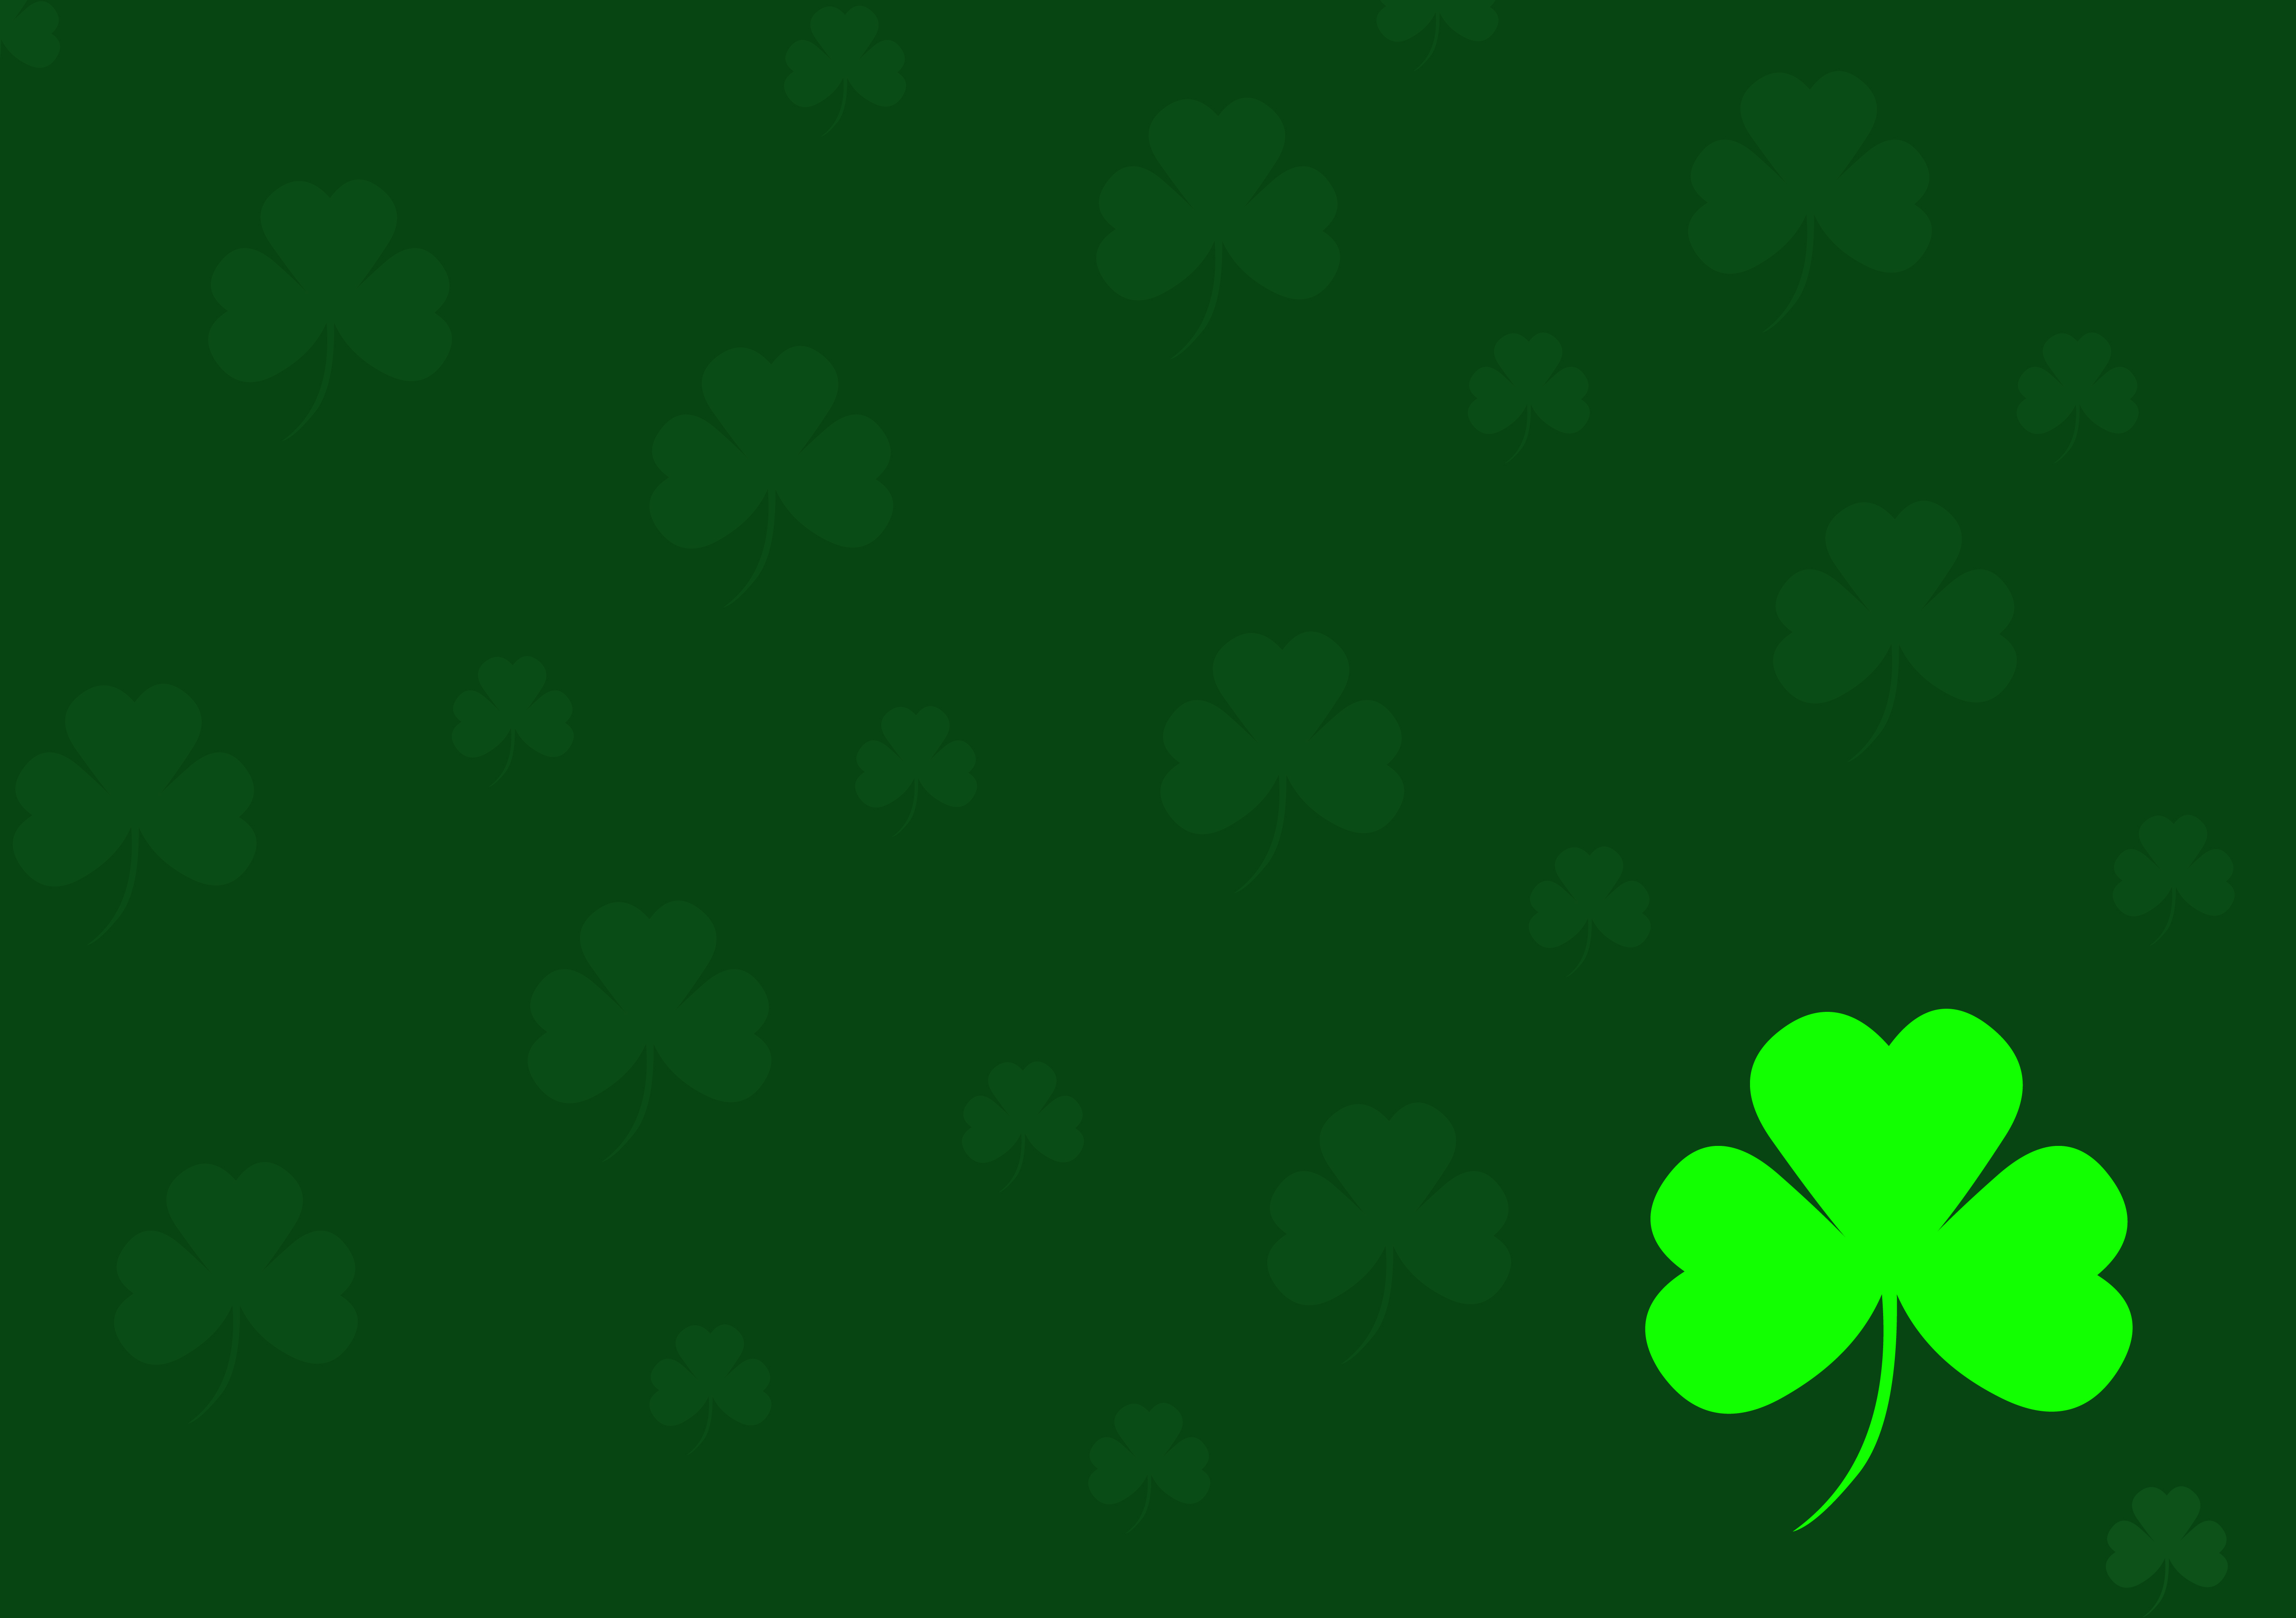 St Patricks Day Images St Patricks Day Backgrounds and 5122x3609